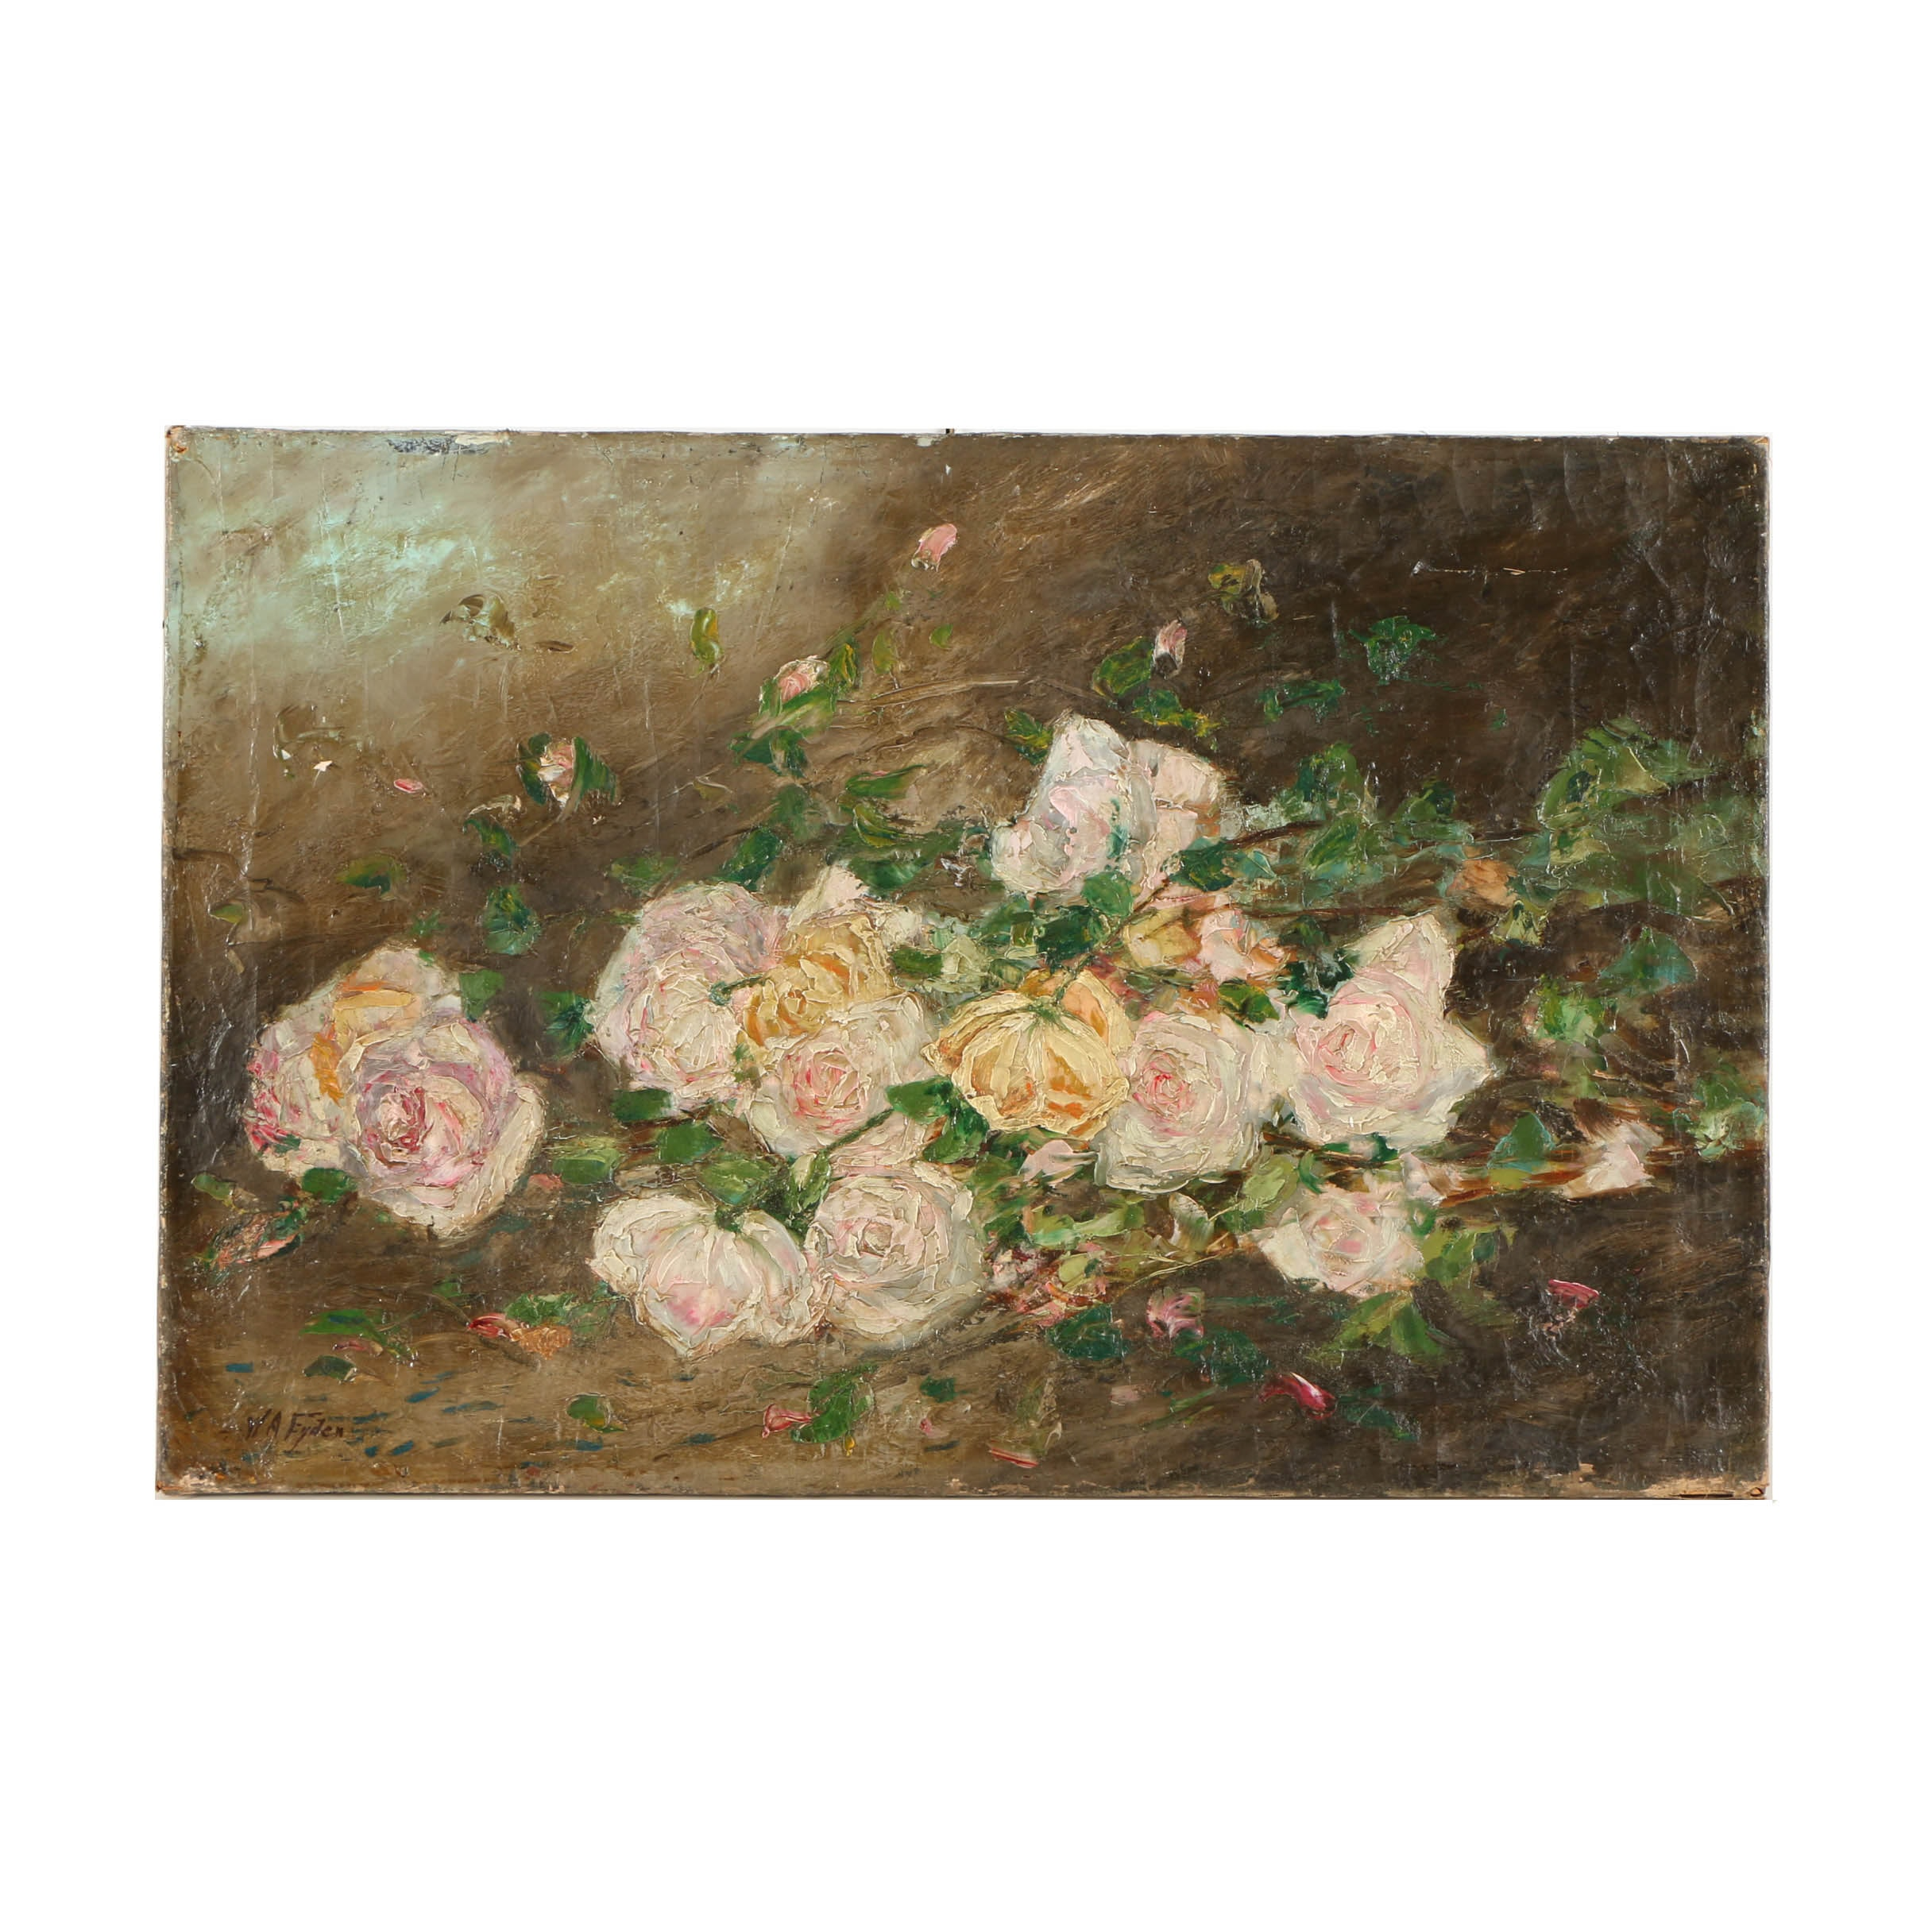 Walter A. Eyden Oil Painting on Canvas of Floral Still Life